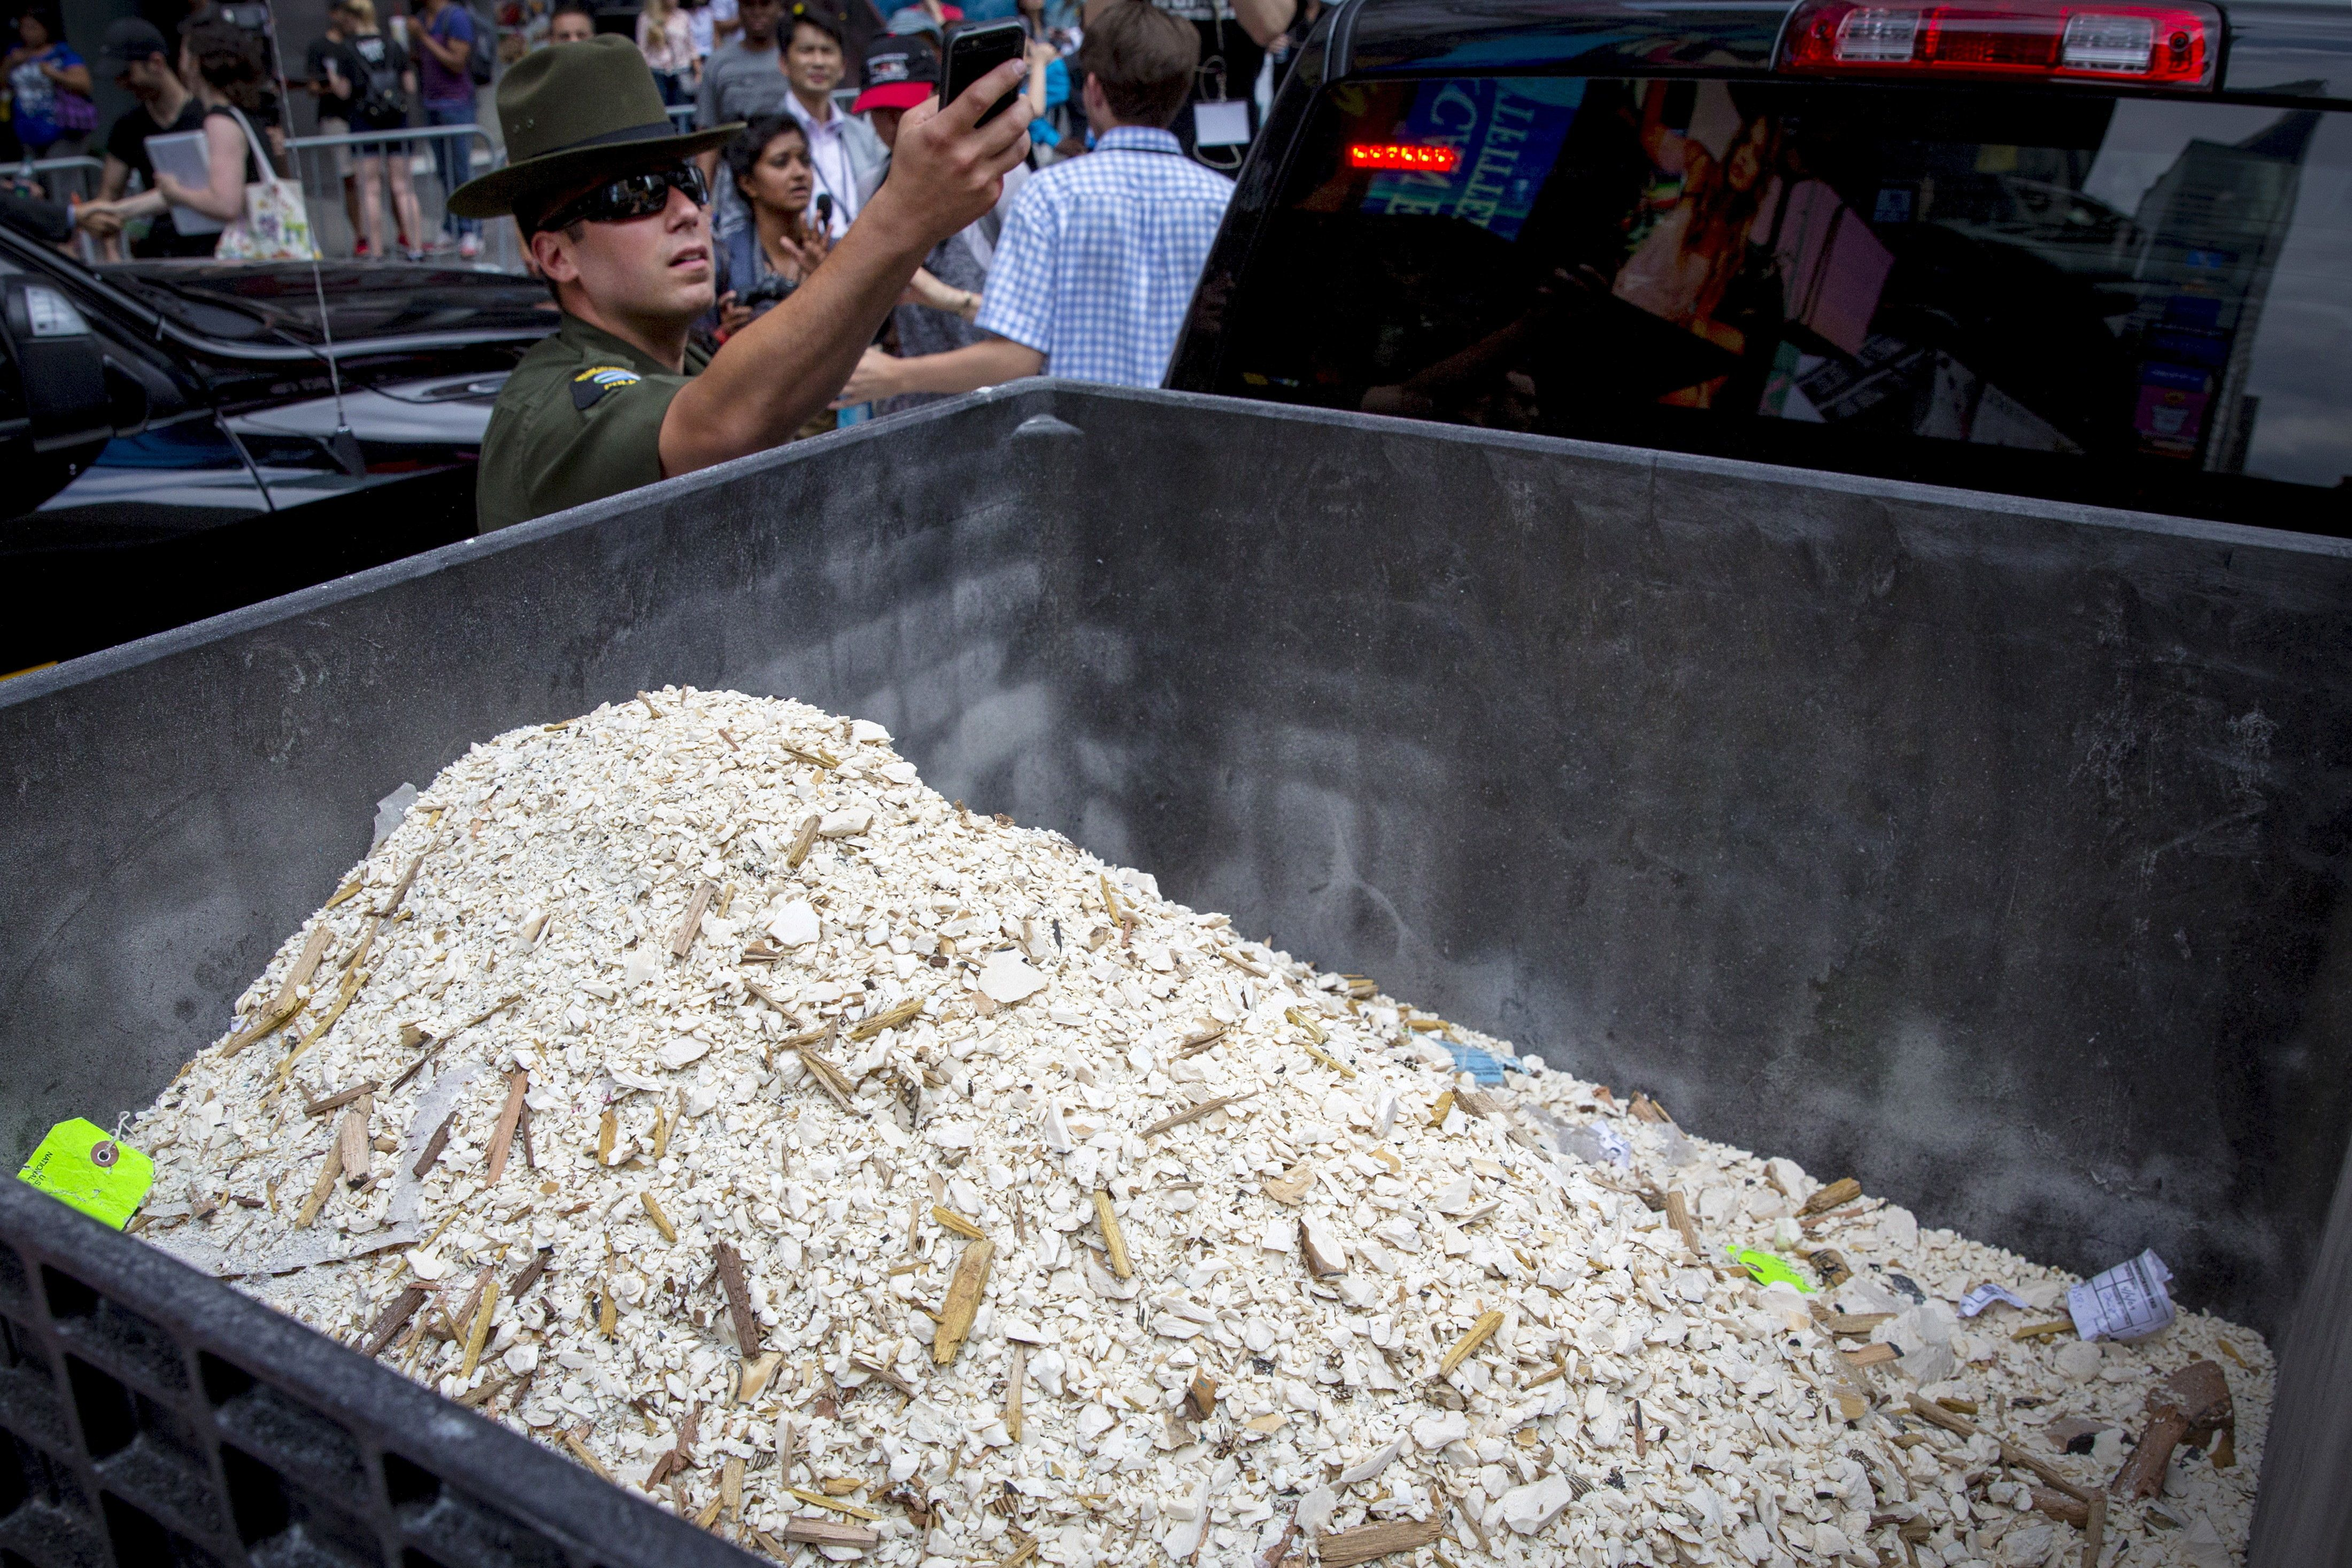 2 tons of illegal ivory crushed in Central Park